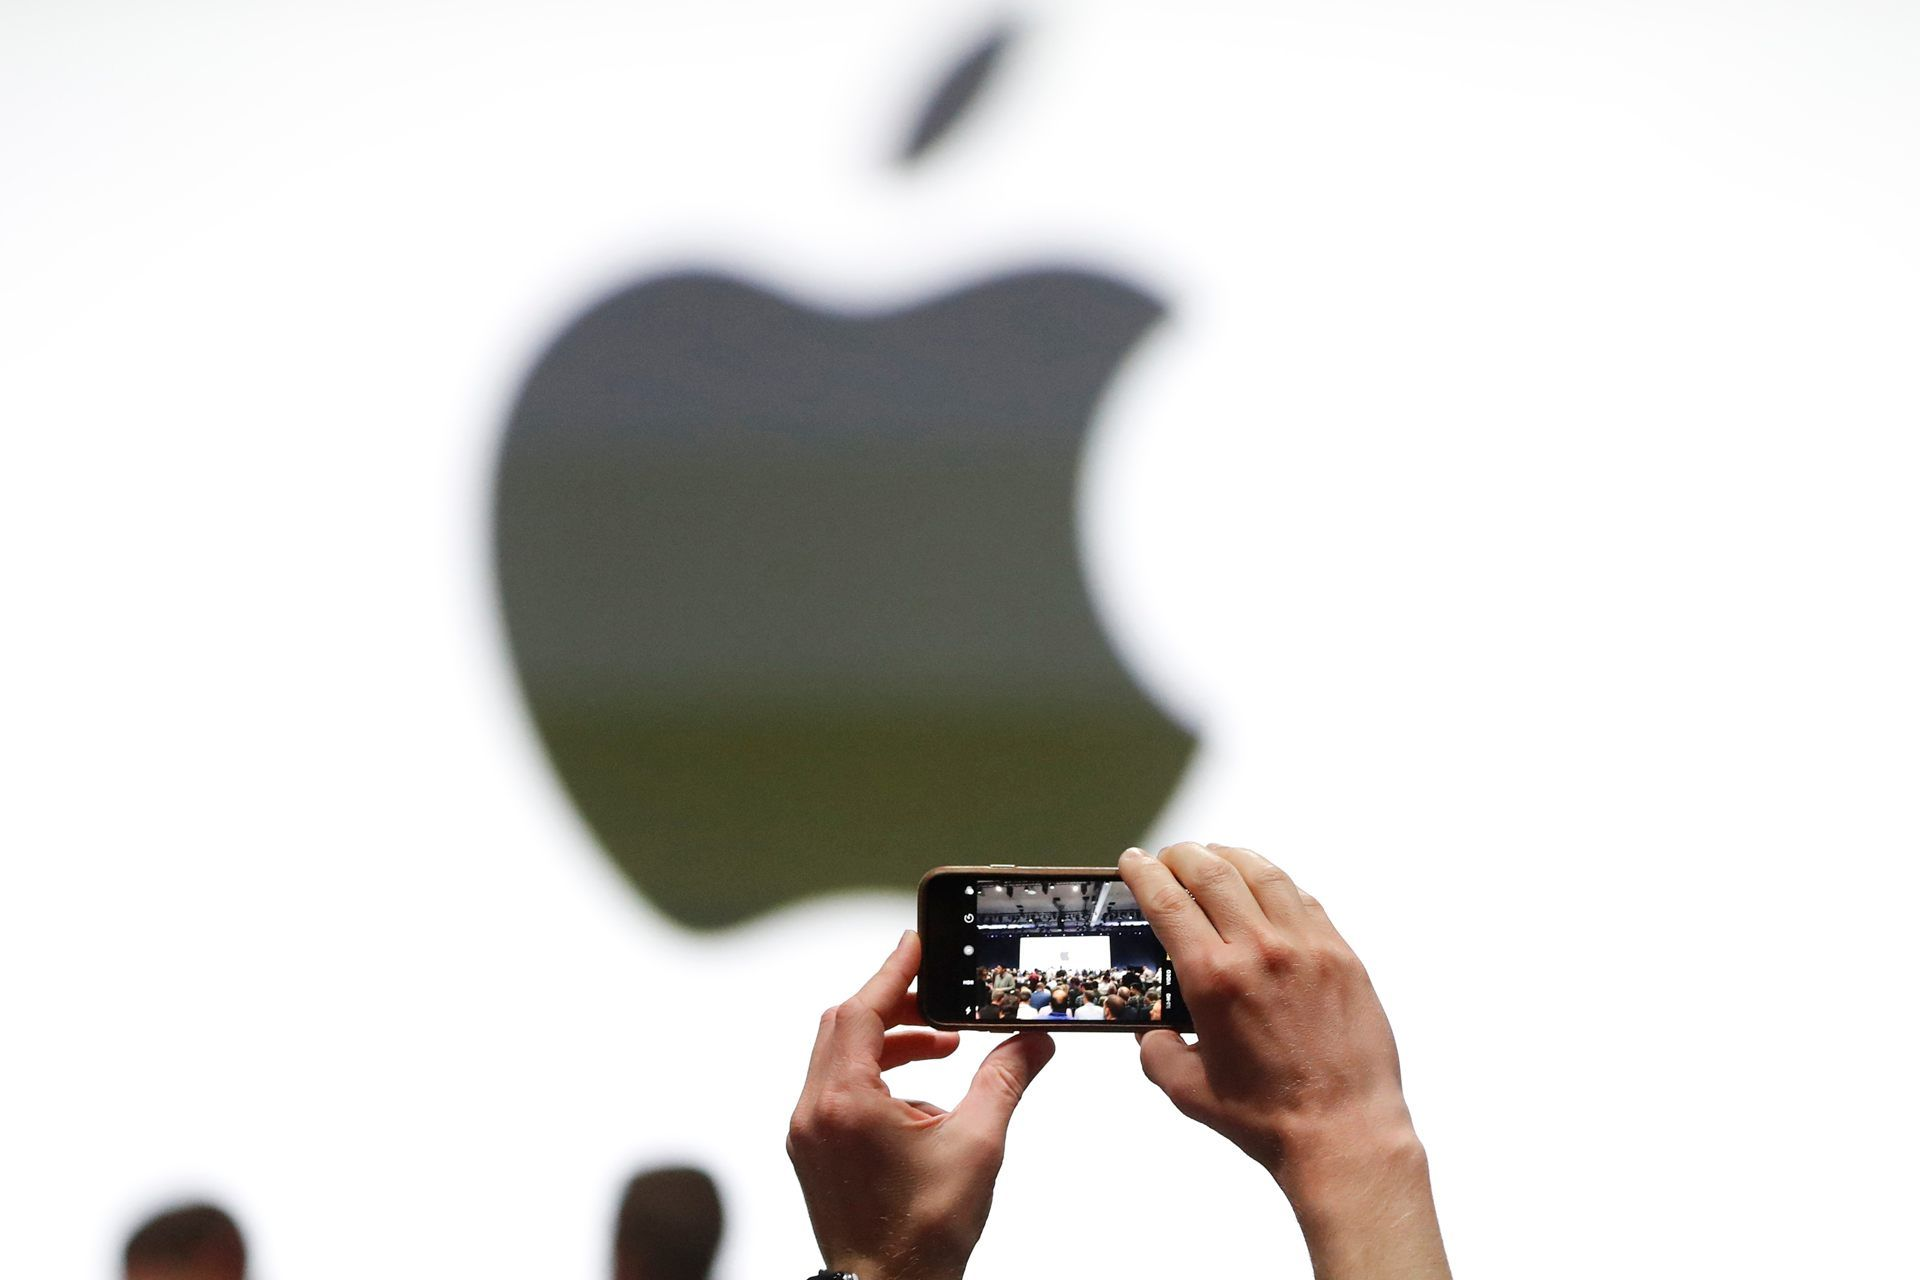 Apple plans to resolve China iPhone ban with a software